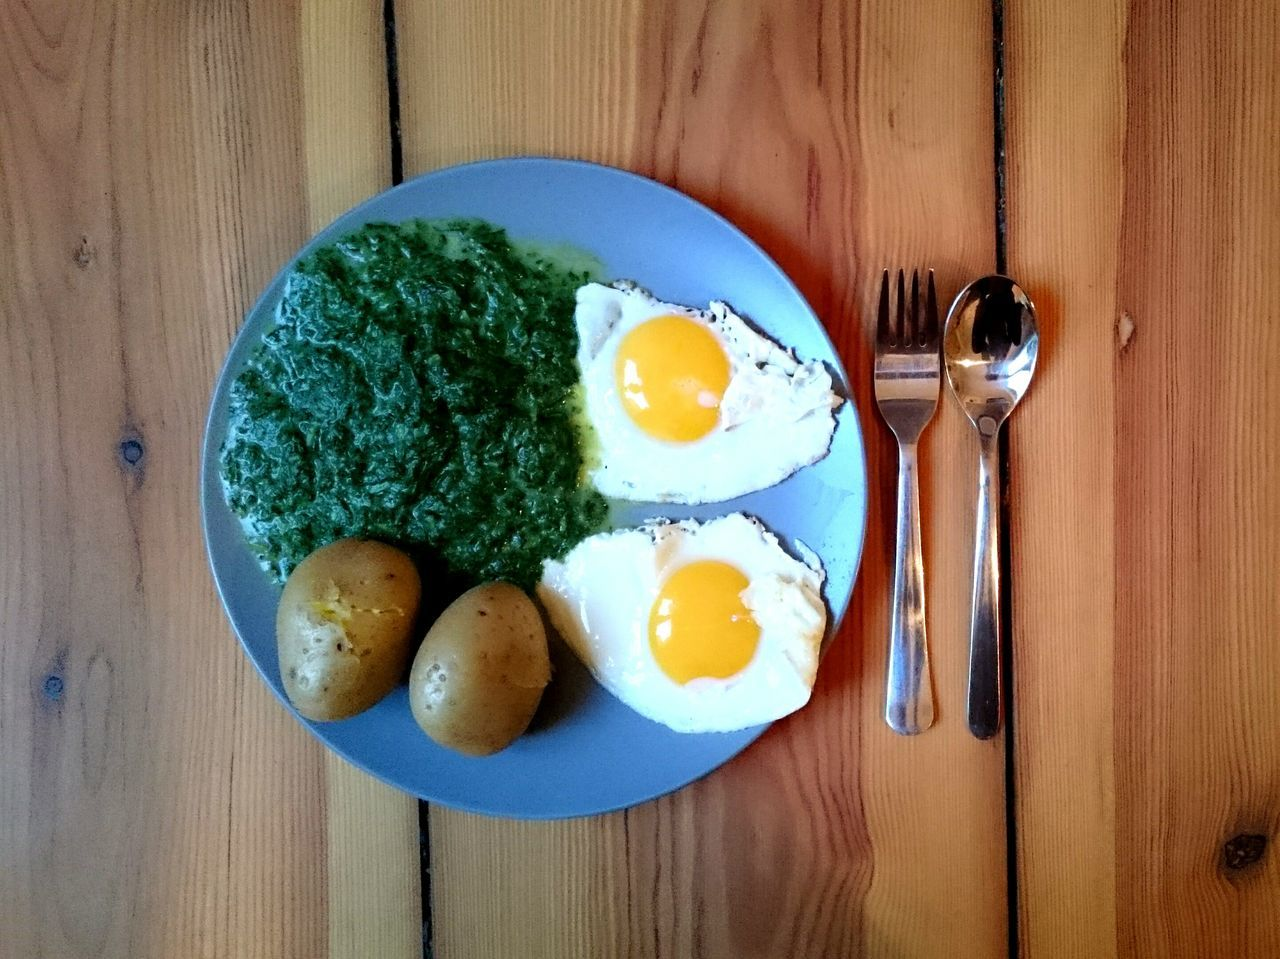 German Food Spinach Plate Food Potato Deutsches Essen Egg Egg Yolk Food And Drink Freshness Indoors  Table Healthy Eating Directly Above Wood - Material Ready-to-eat Boiled Egg Egg White Serving Size Breakfast No People High Angle View Fried Meal